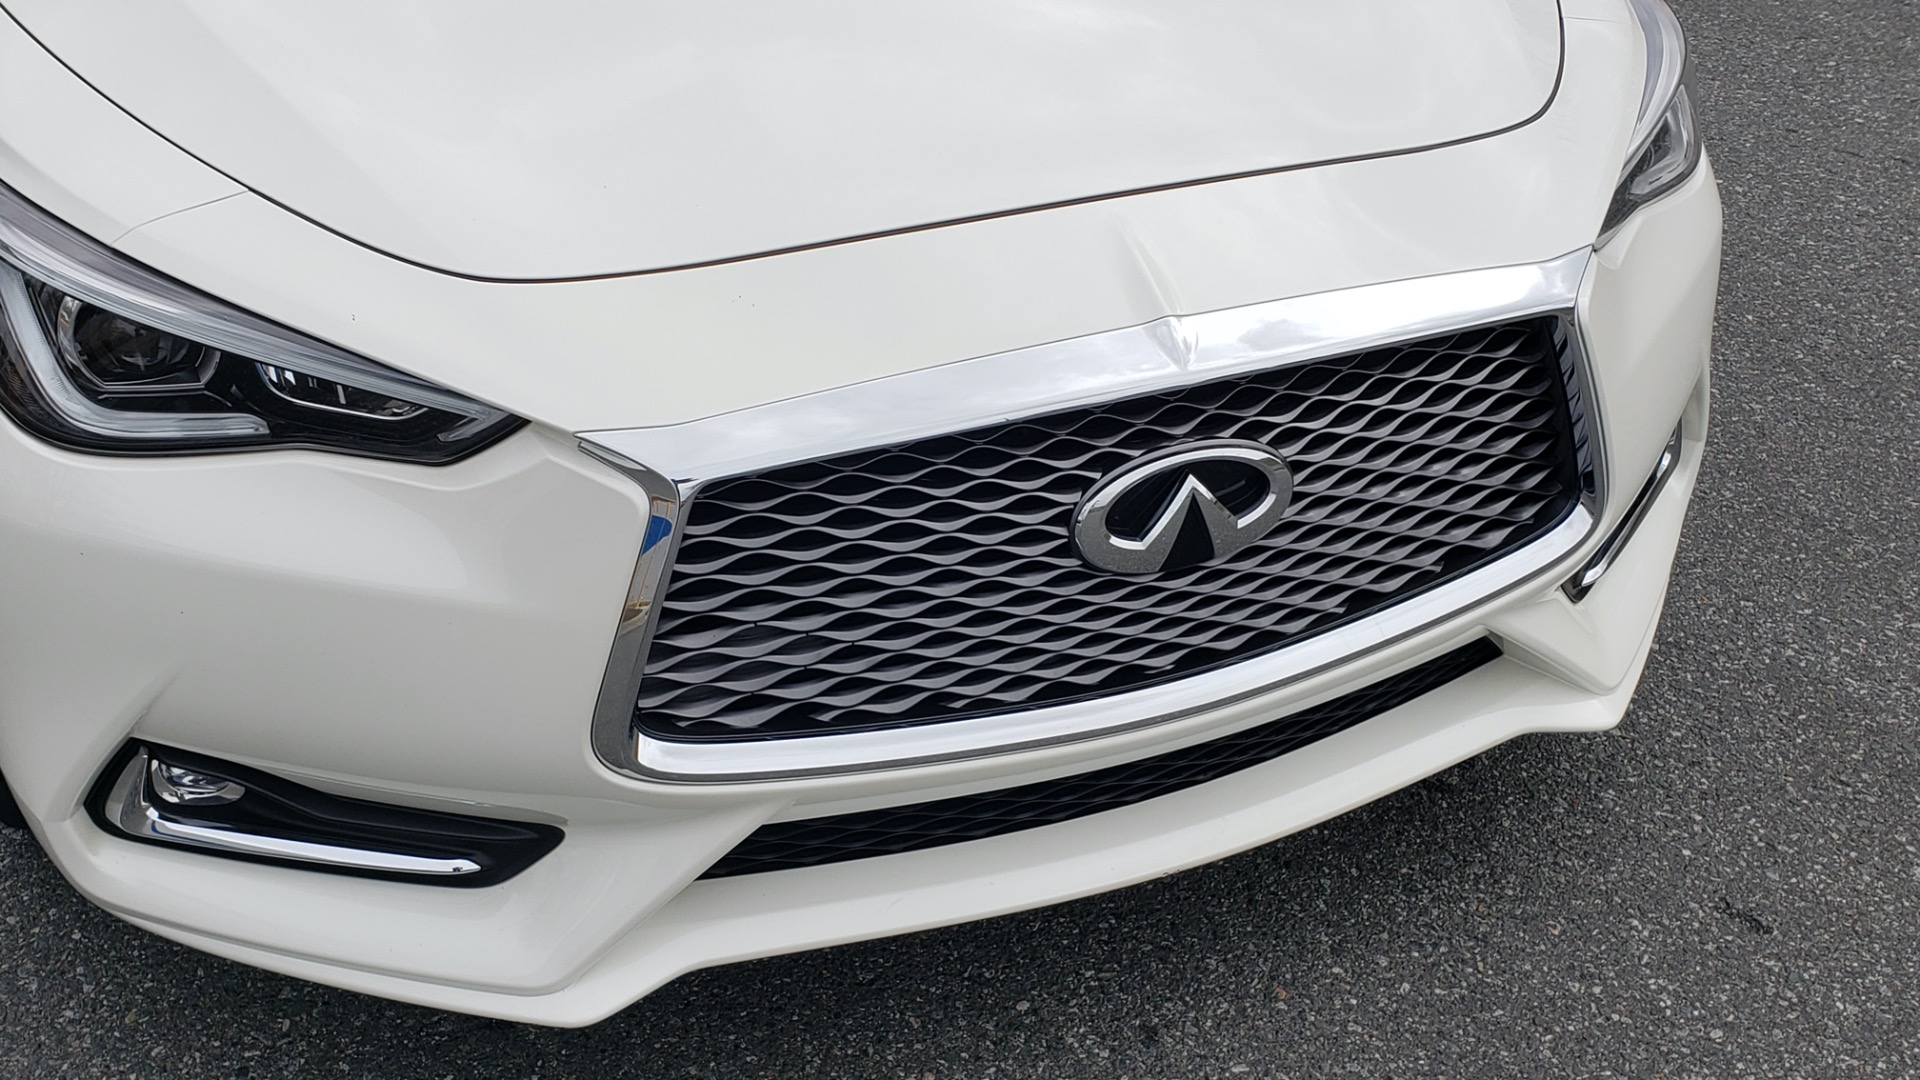 Used 2018 Infiniti Q60 RED SPORT 400 / SENSORY PKG / SUNROOF / NAV / REARVIEW for sale Sold at Formula Imports in Charlotte NC 28227 25